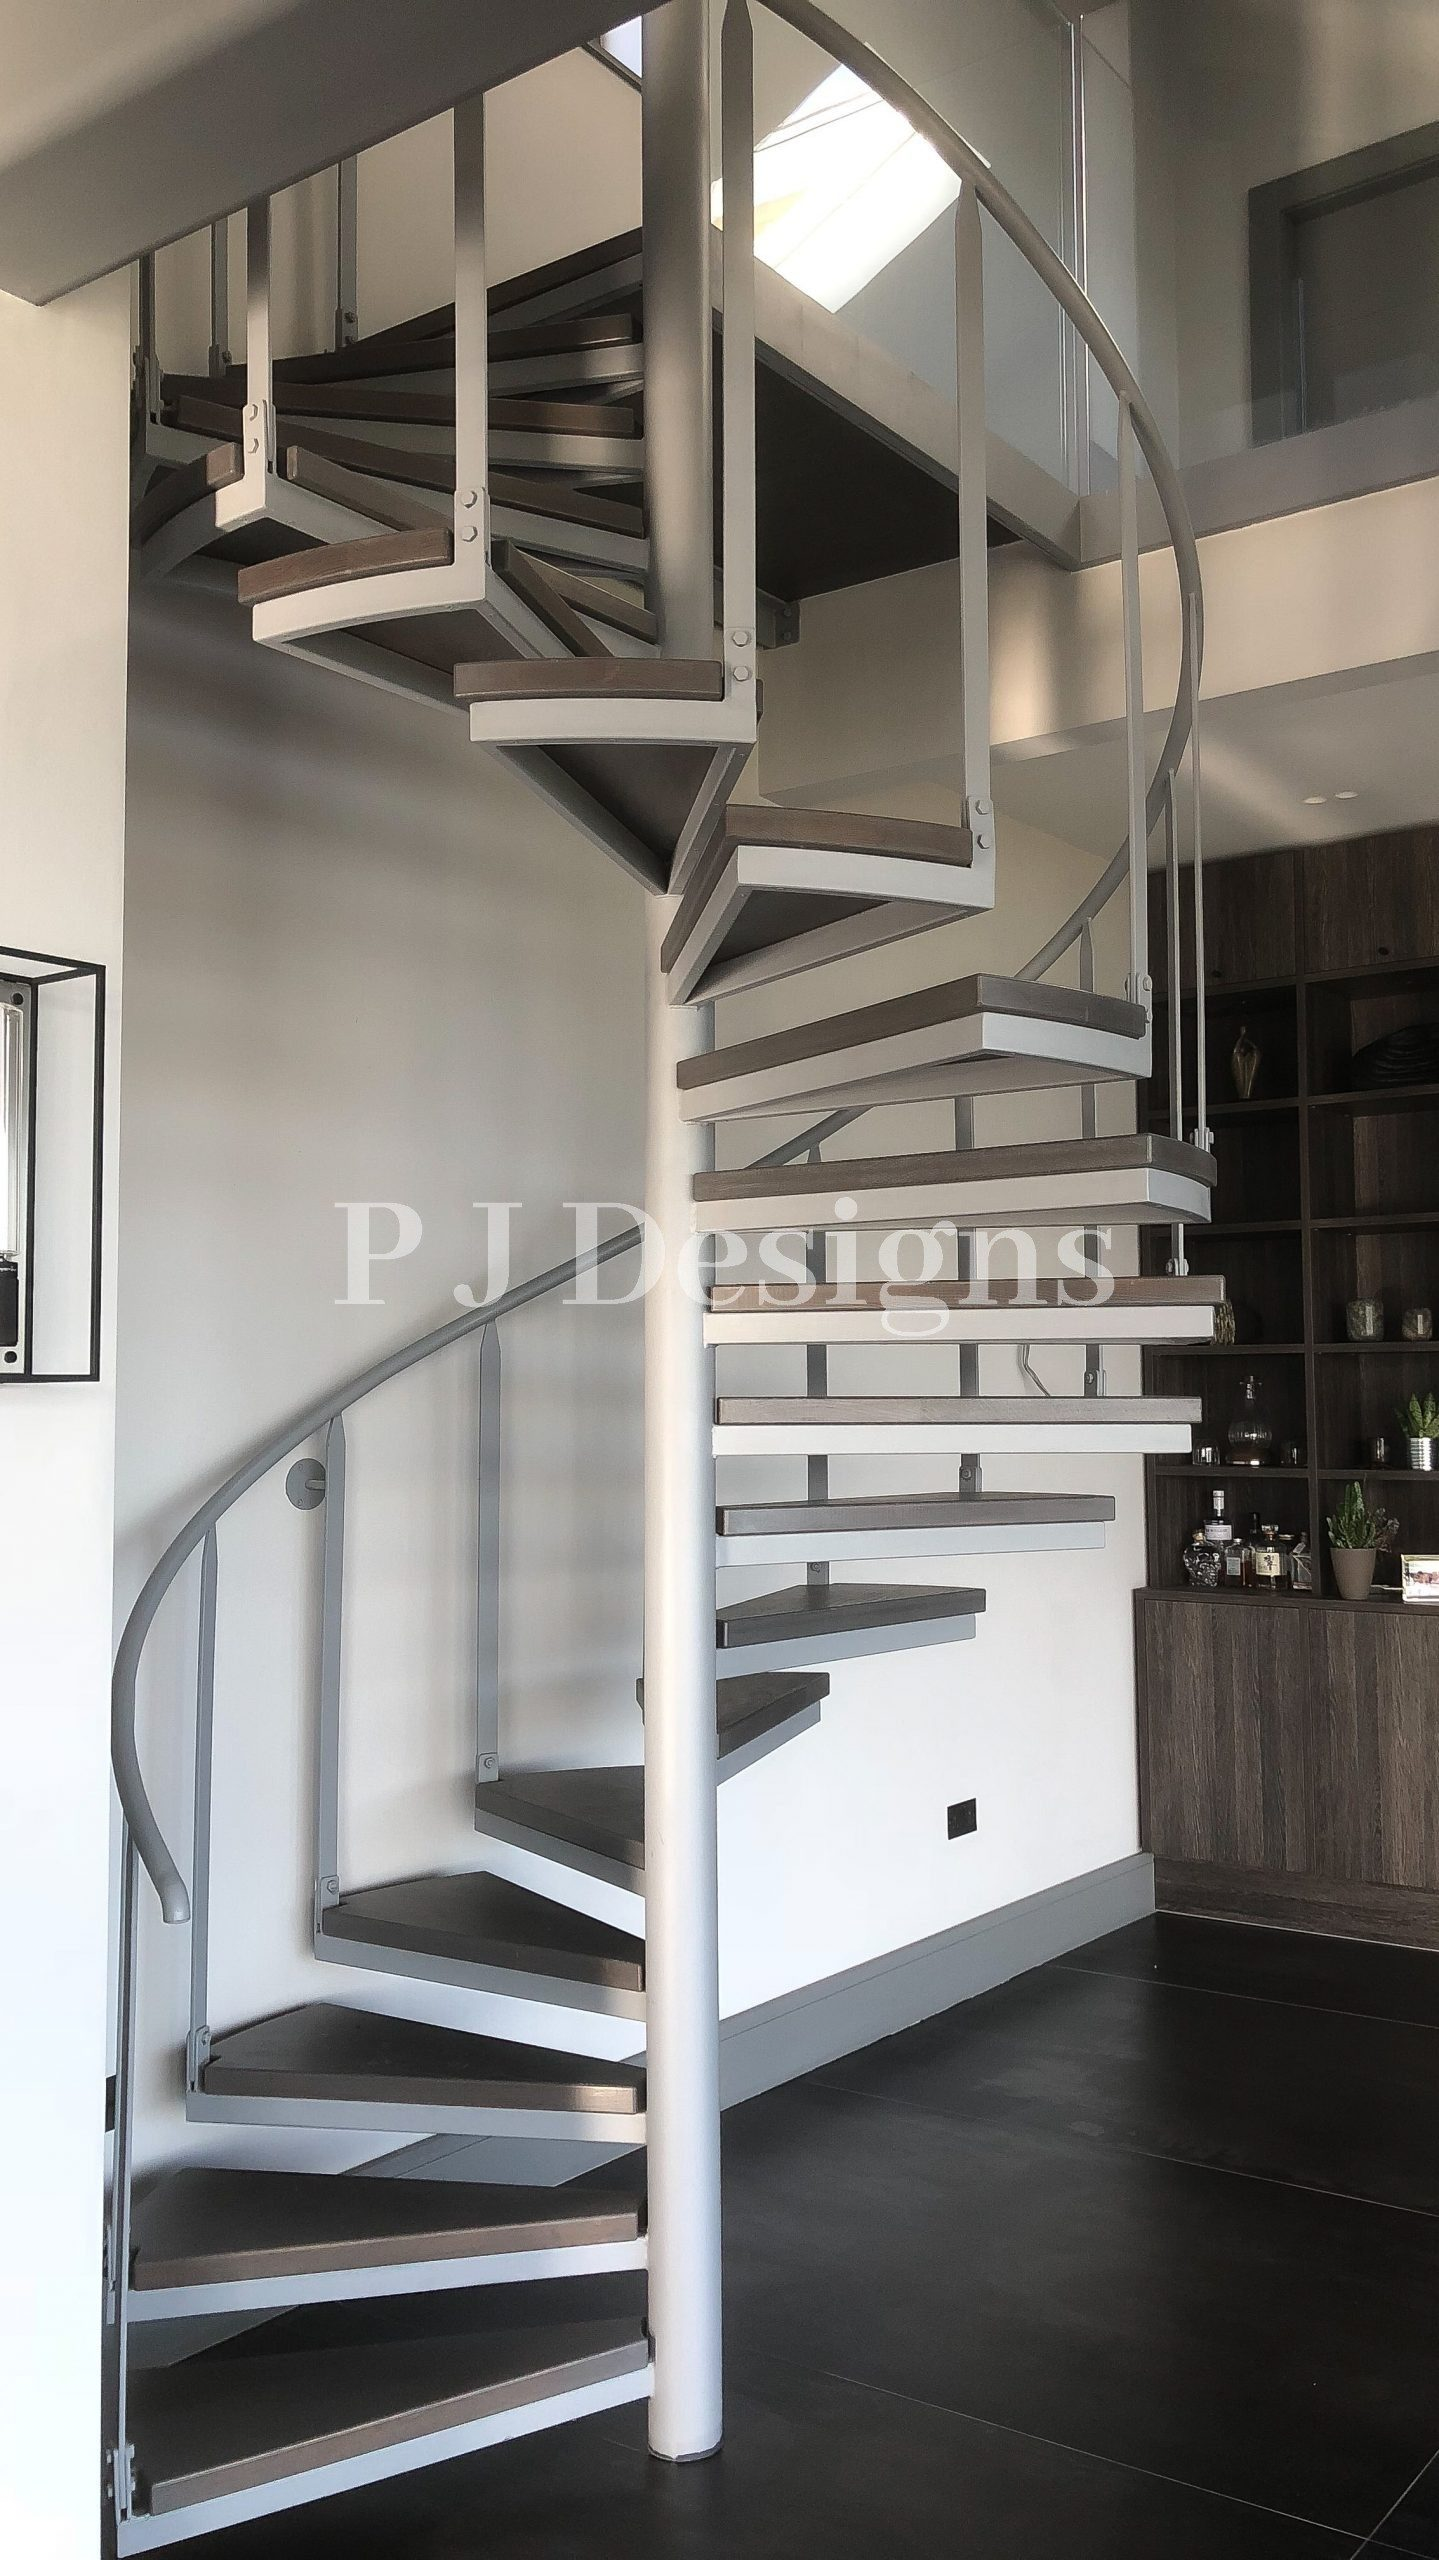 Metal Spiral Staircase finished in a Grey/White colour with simplistic handrails and balustrades coming up from the end of each step, to add to the tidy and modern ascetic to the room.